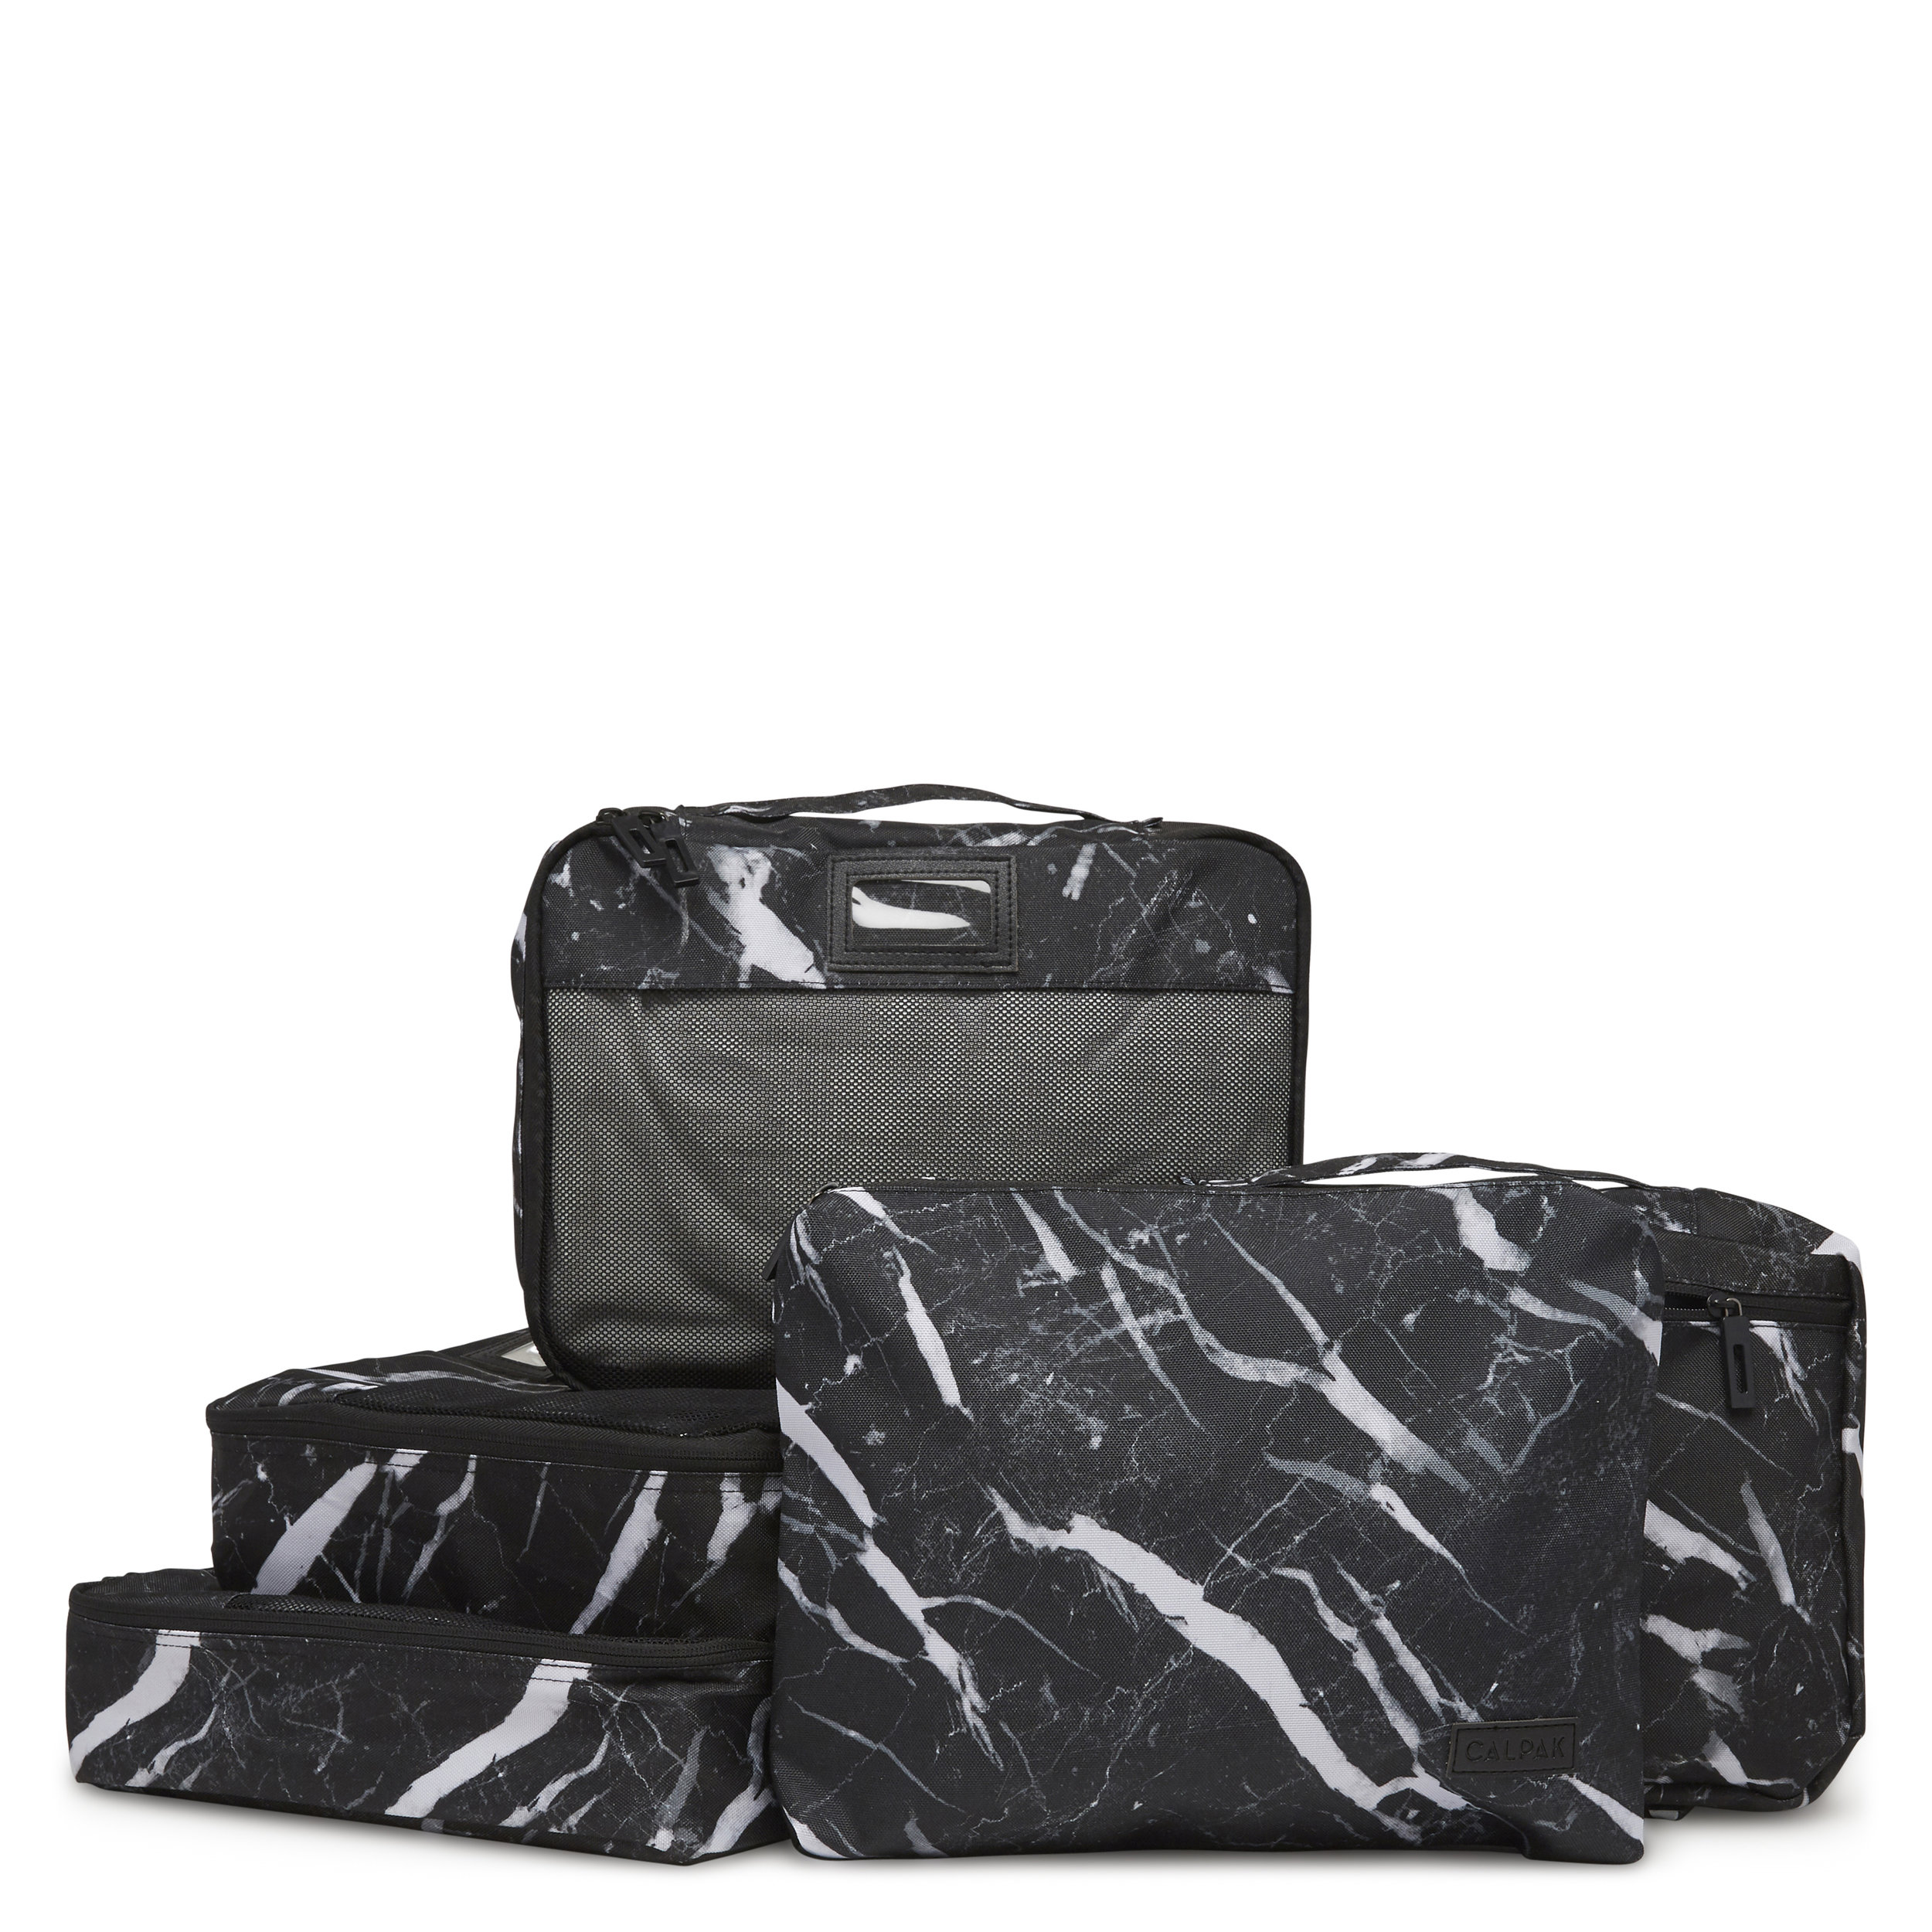 Packing Cubes - Midnight Marble - 5 Piece Set -